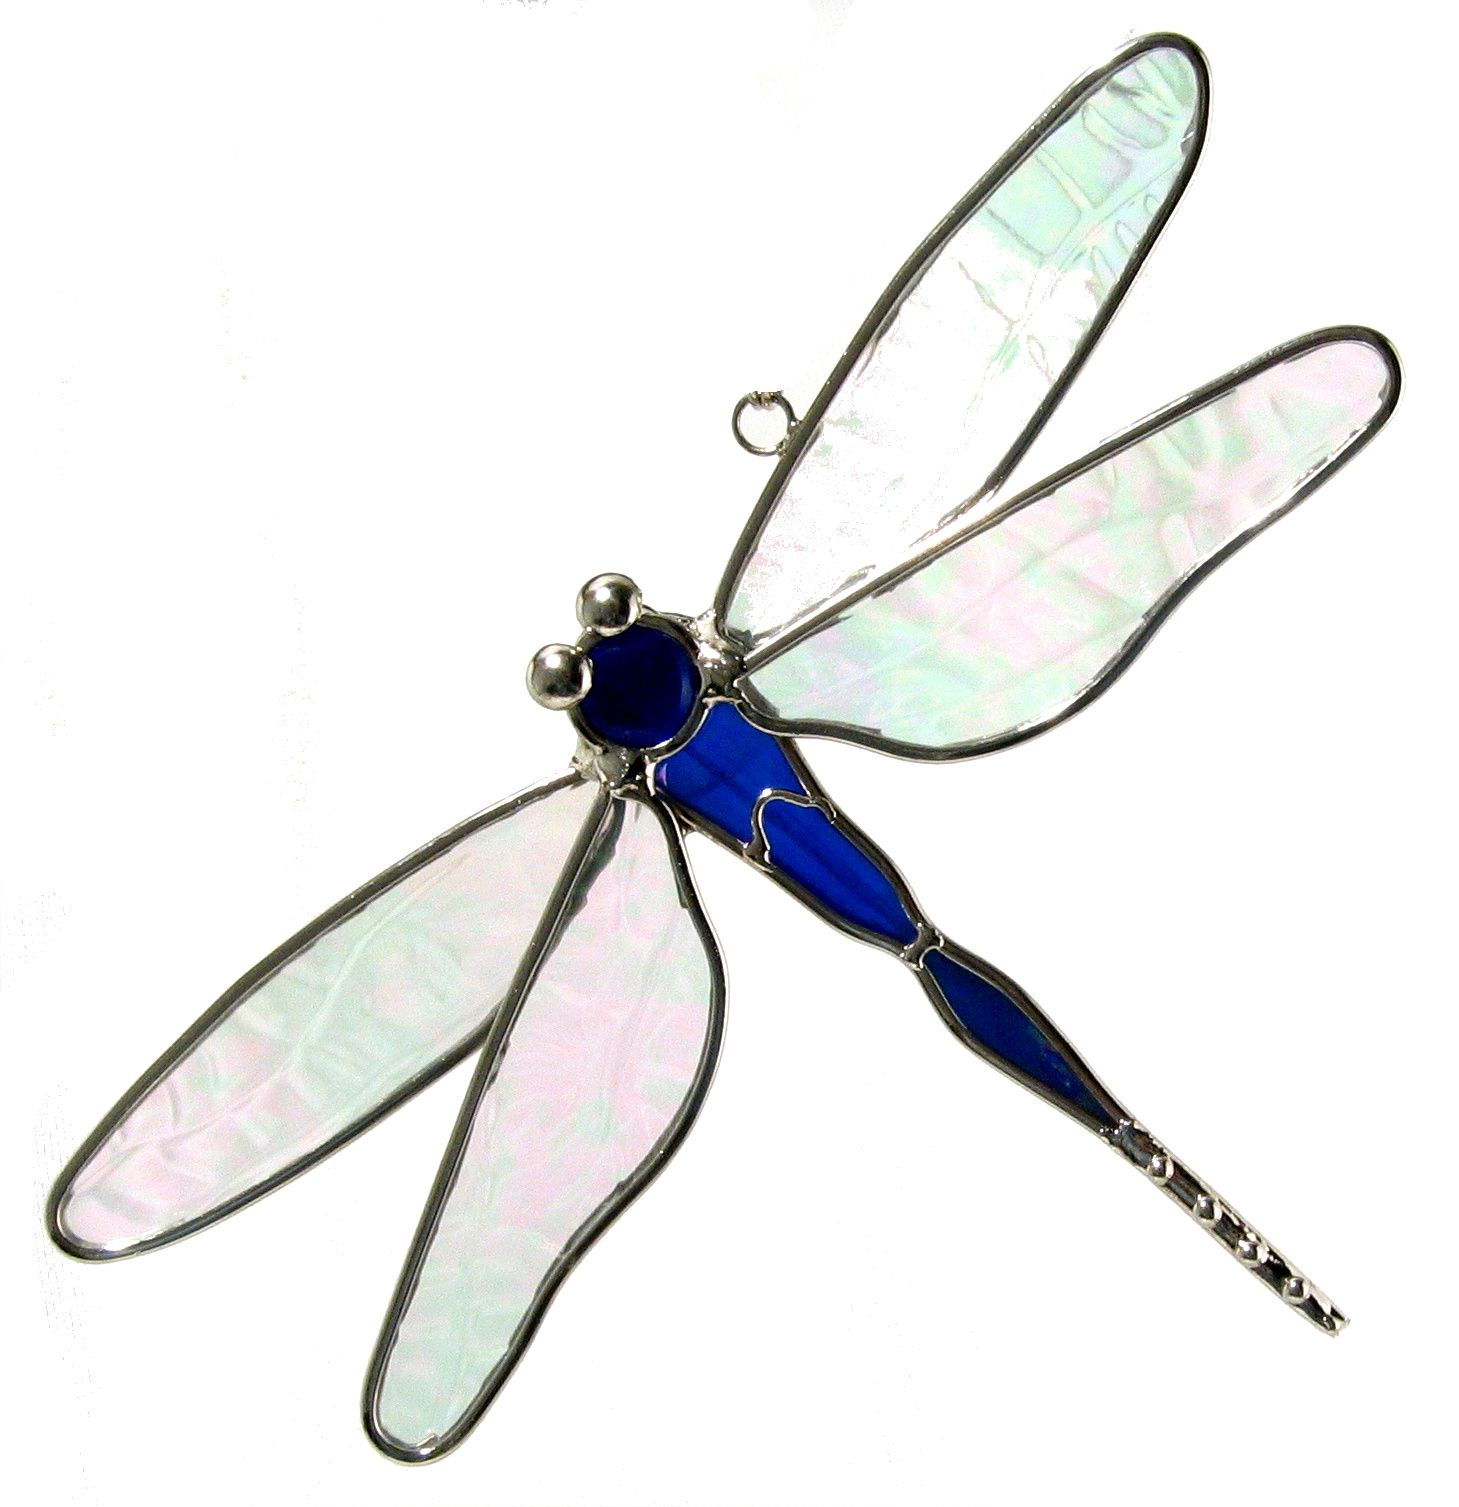 Stained glass dragonfly suncatcher  also available in red or green